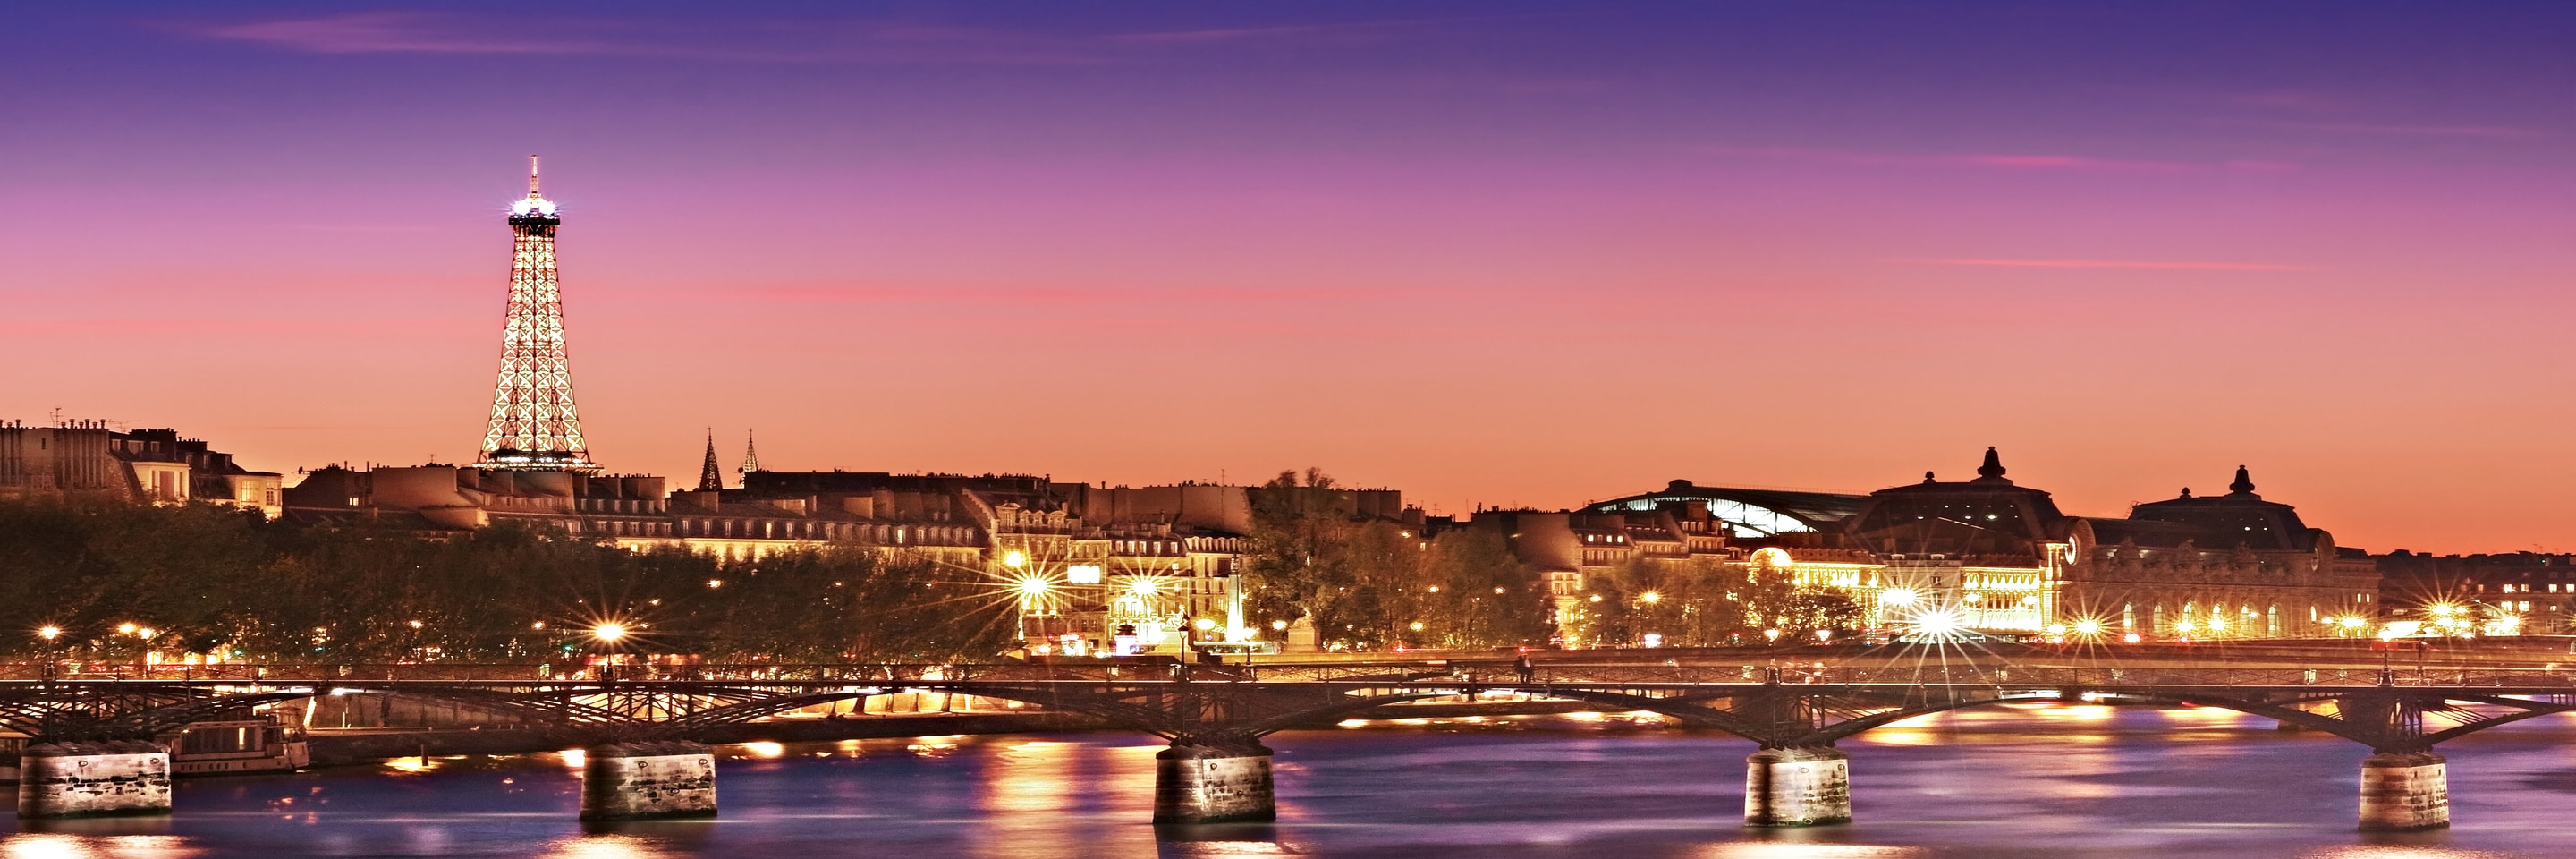 Evening view of Paris, with River Seine and the Eiffel Tower.